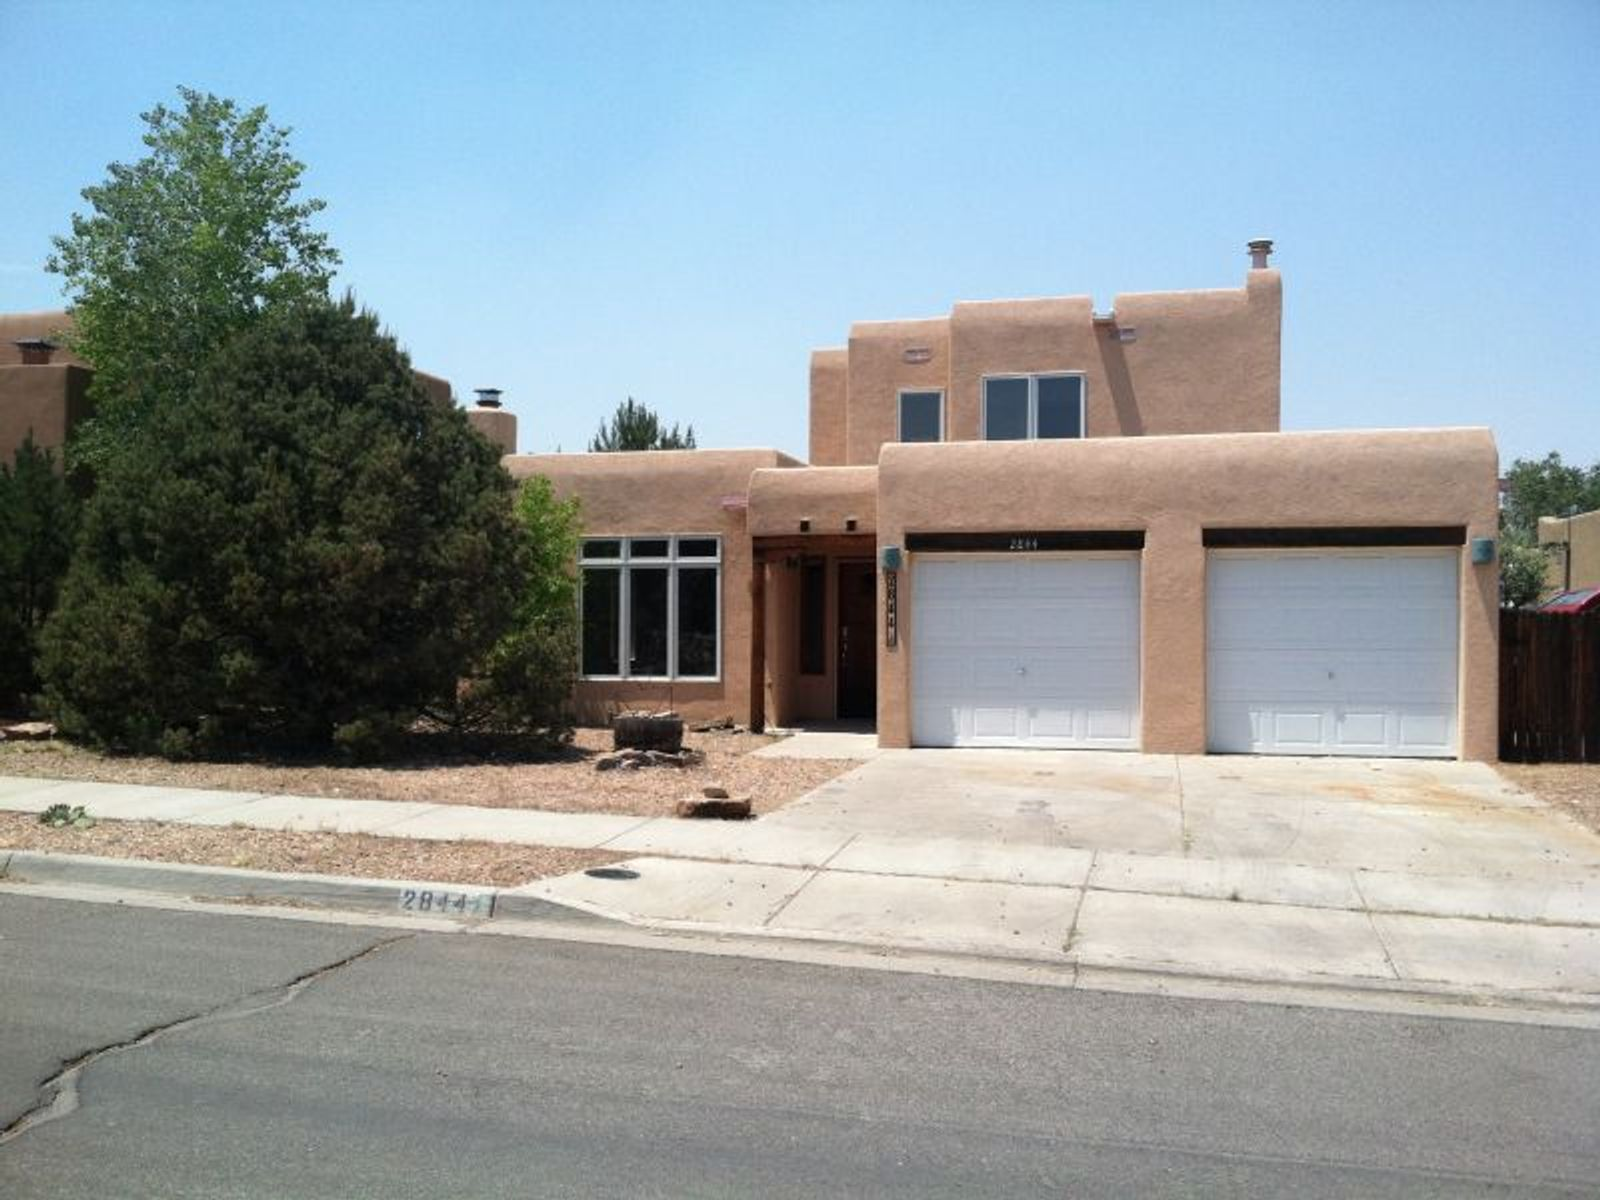 2844 Pueblo Bonito, Santa Fe NM Single Family Home - Santa Fe Real Estate